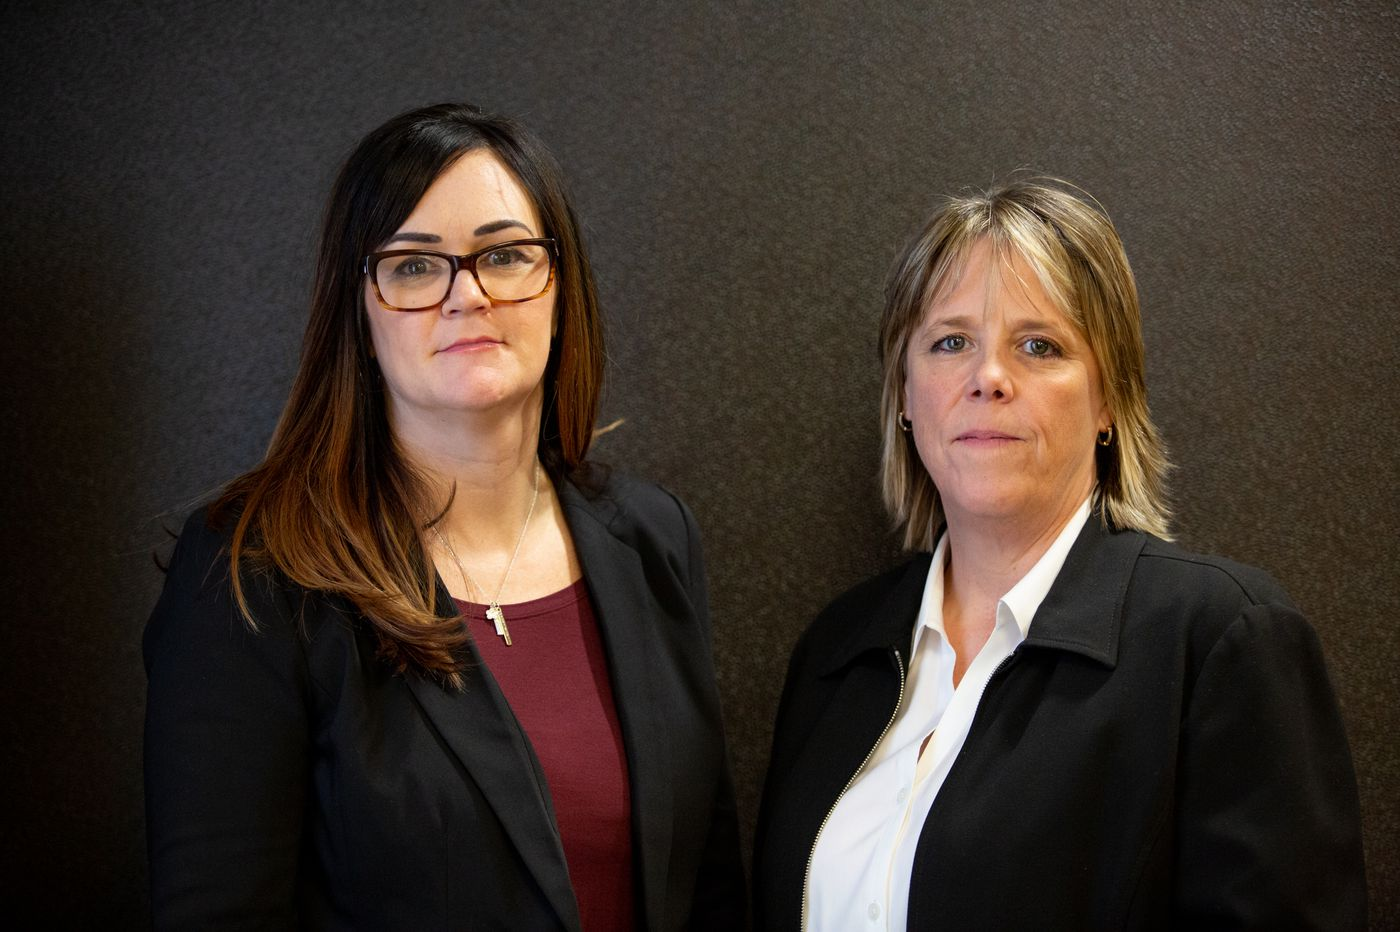 Suit by three high-ranking female employees alleges discrimination by Atlantic County prosecutor